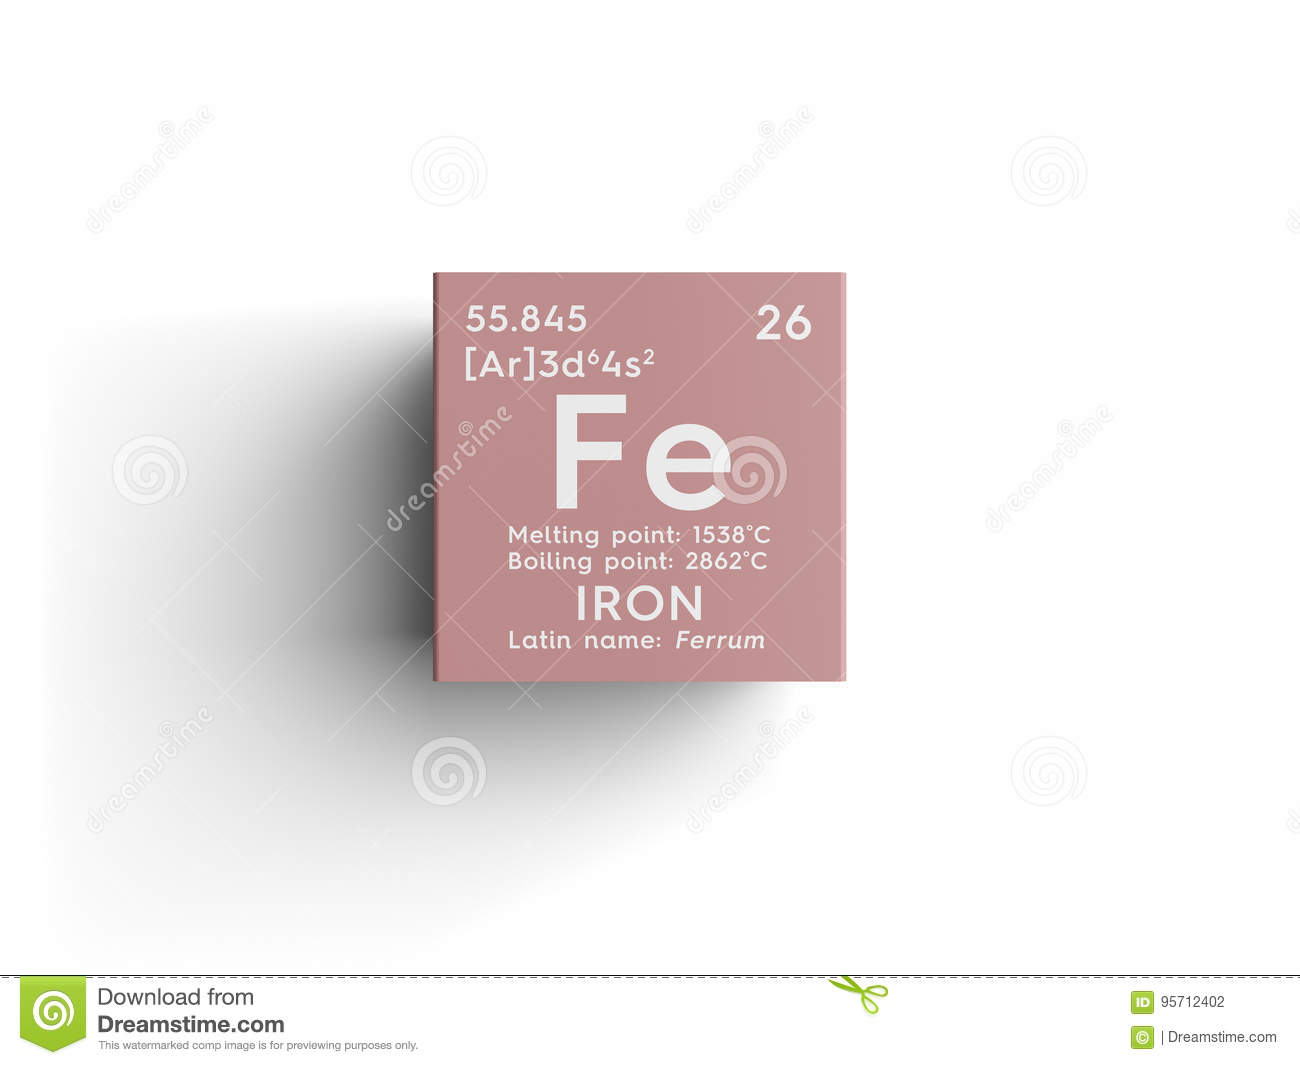 Iron ferrum transition metals chemical element of mendeleevs chemical element of mendeleevs periodic table gamestrikefo Image collections